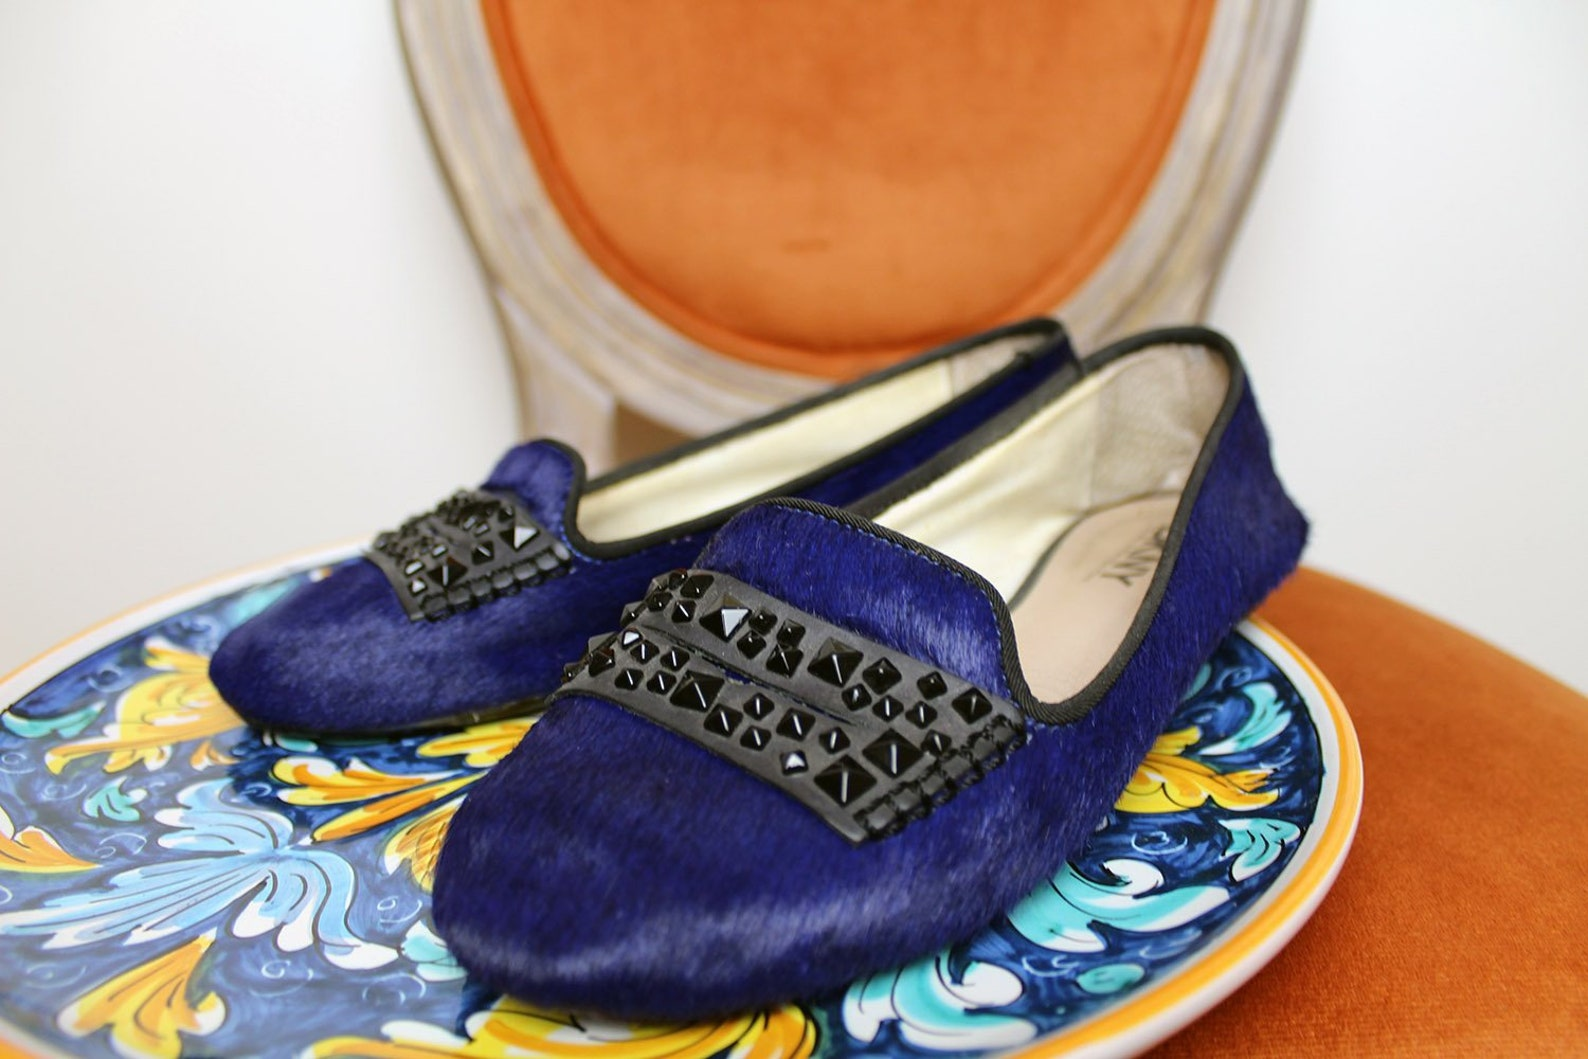 90s dkny designer flats/pony skin royal blue ballet flat shoes/embellished black studded flats/furry cowhide slip on unique mocc